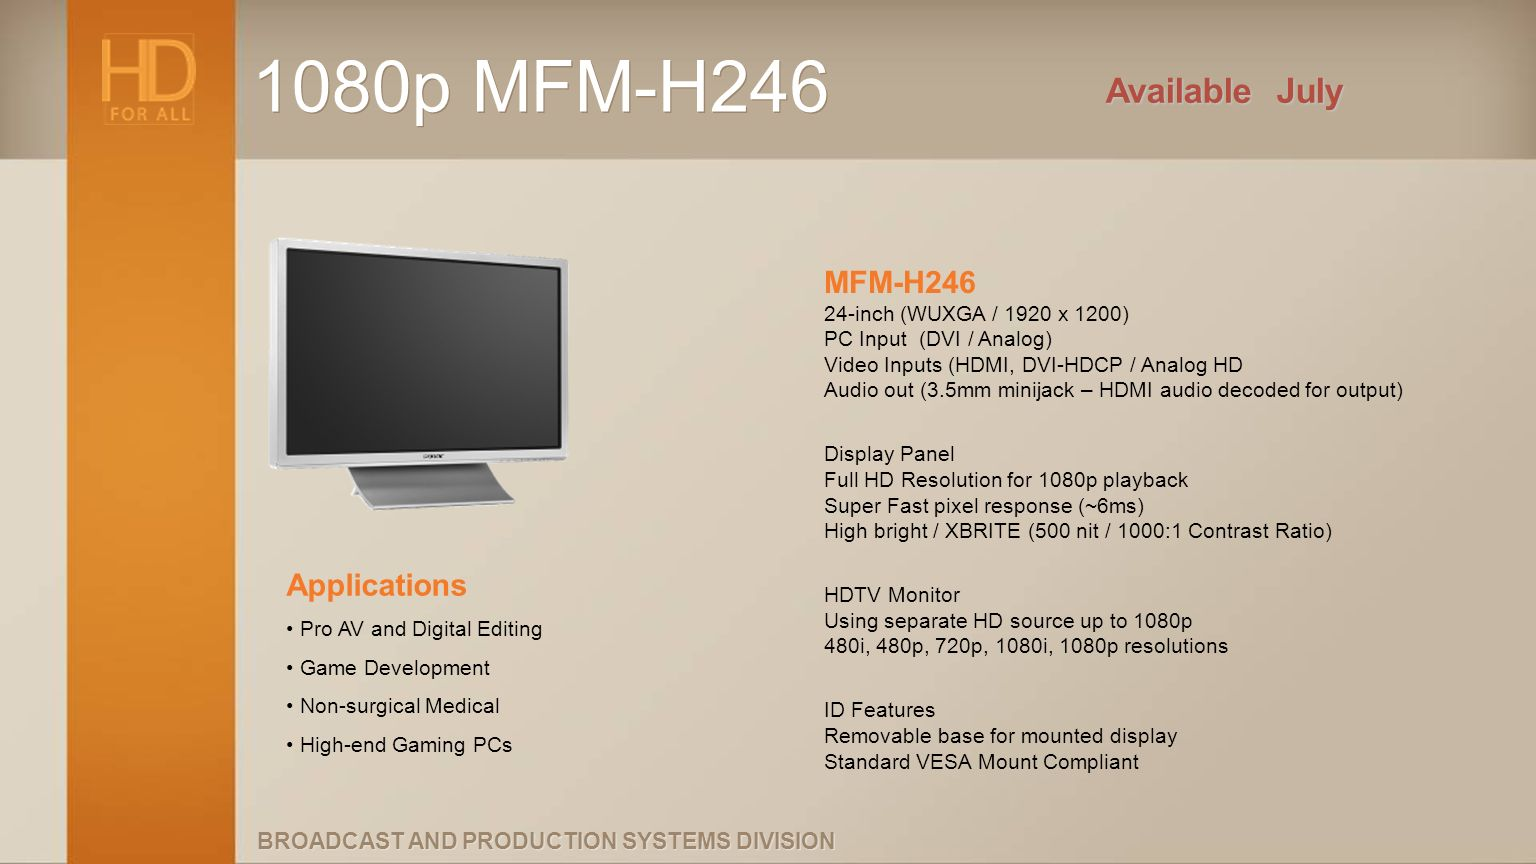 1080p MFM-H246Available July.